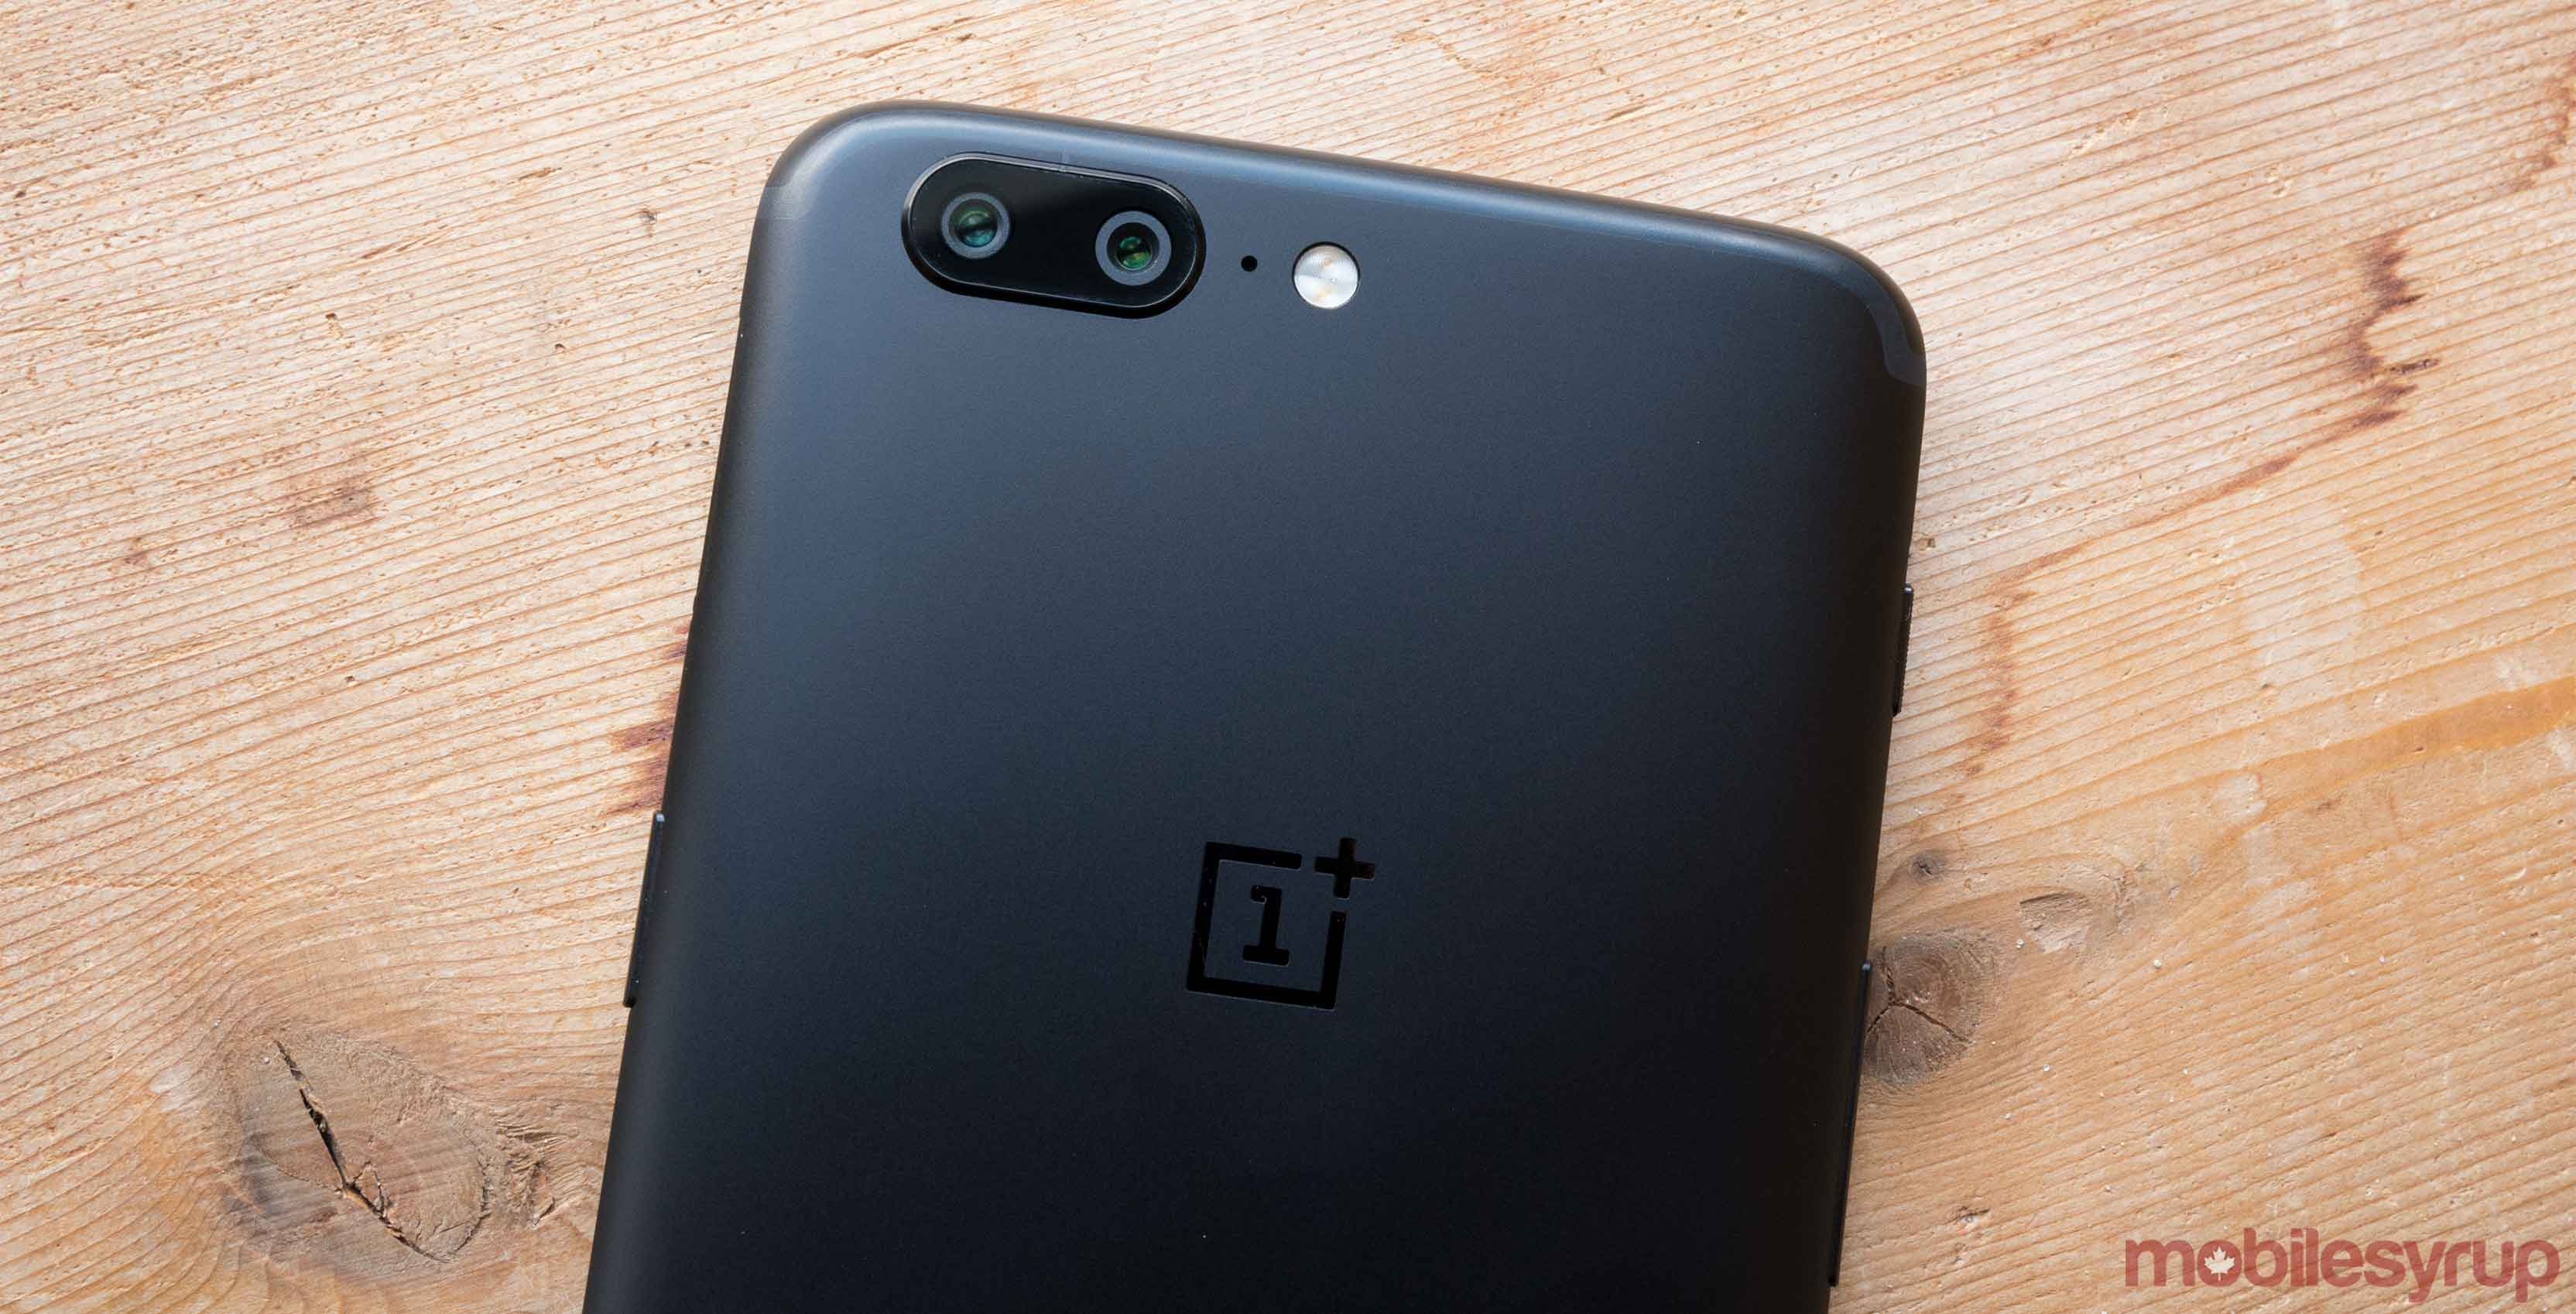 Oneplus 5 canadian pricing and availability oneplus follow up to the popular oneplus 3 and oneplus 3t the oneplus 5 has arrived and it comes bearing a variety of new features solutioingenieria